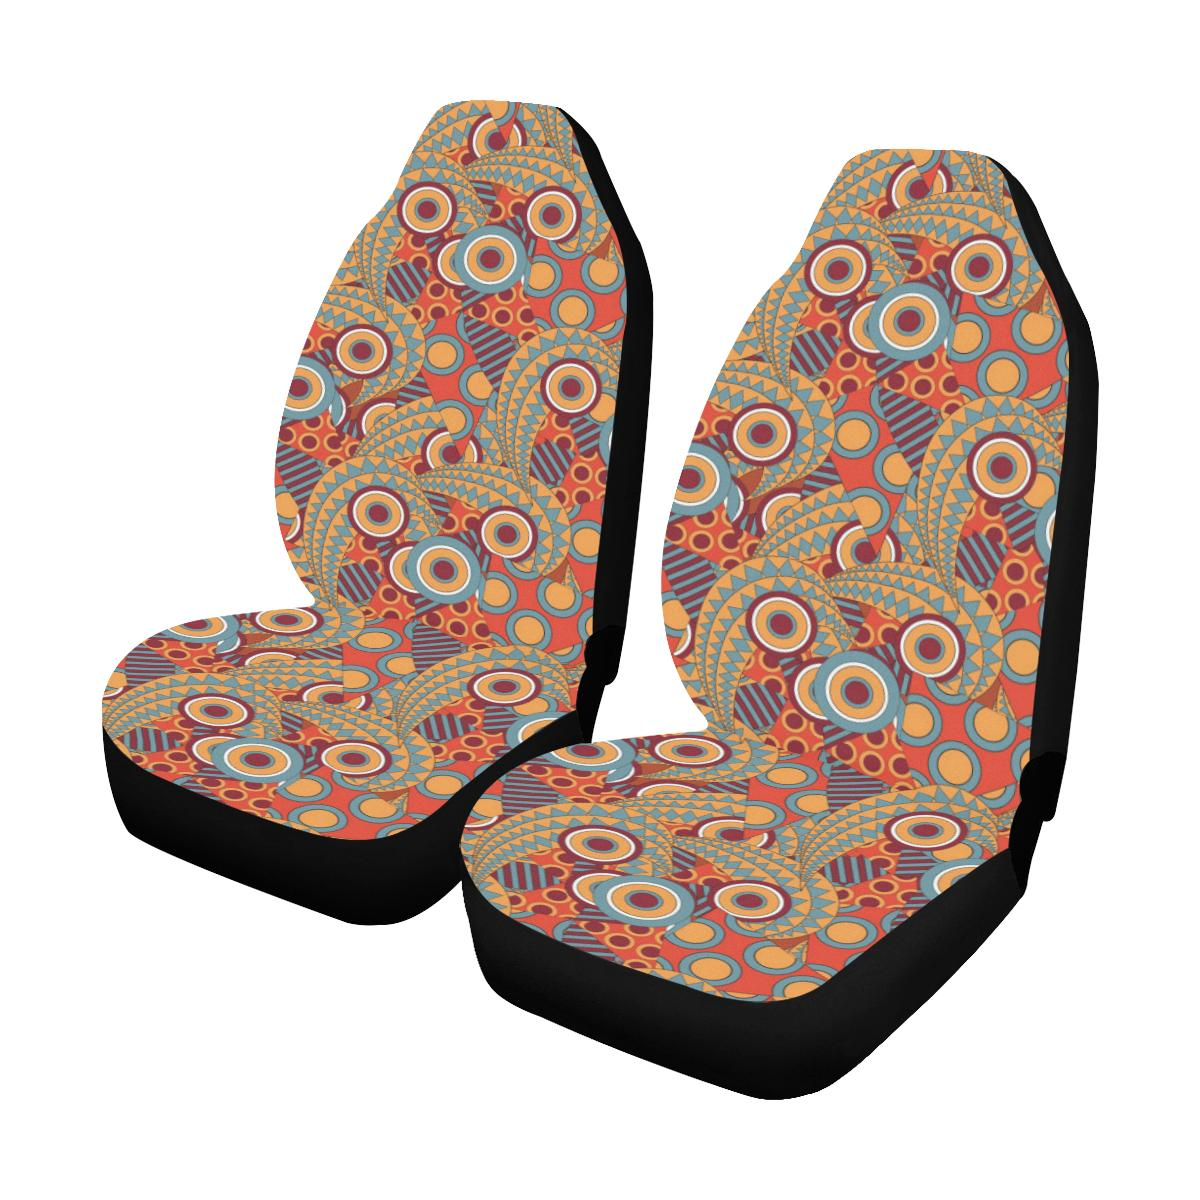 African Pattern Print Design 06 Car Seat Covers (Set of 2)-JORJUNE.COM